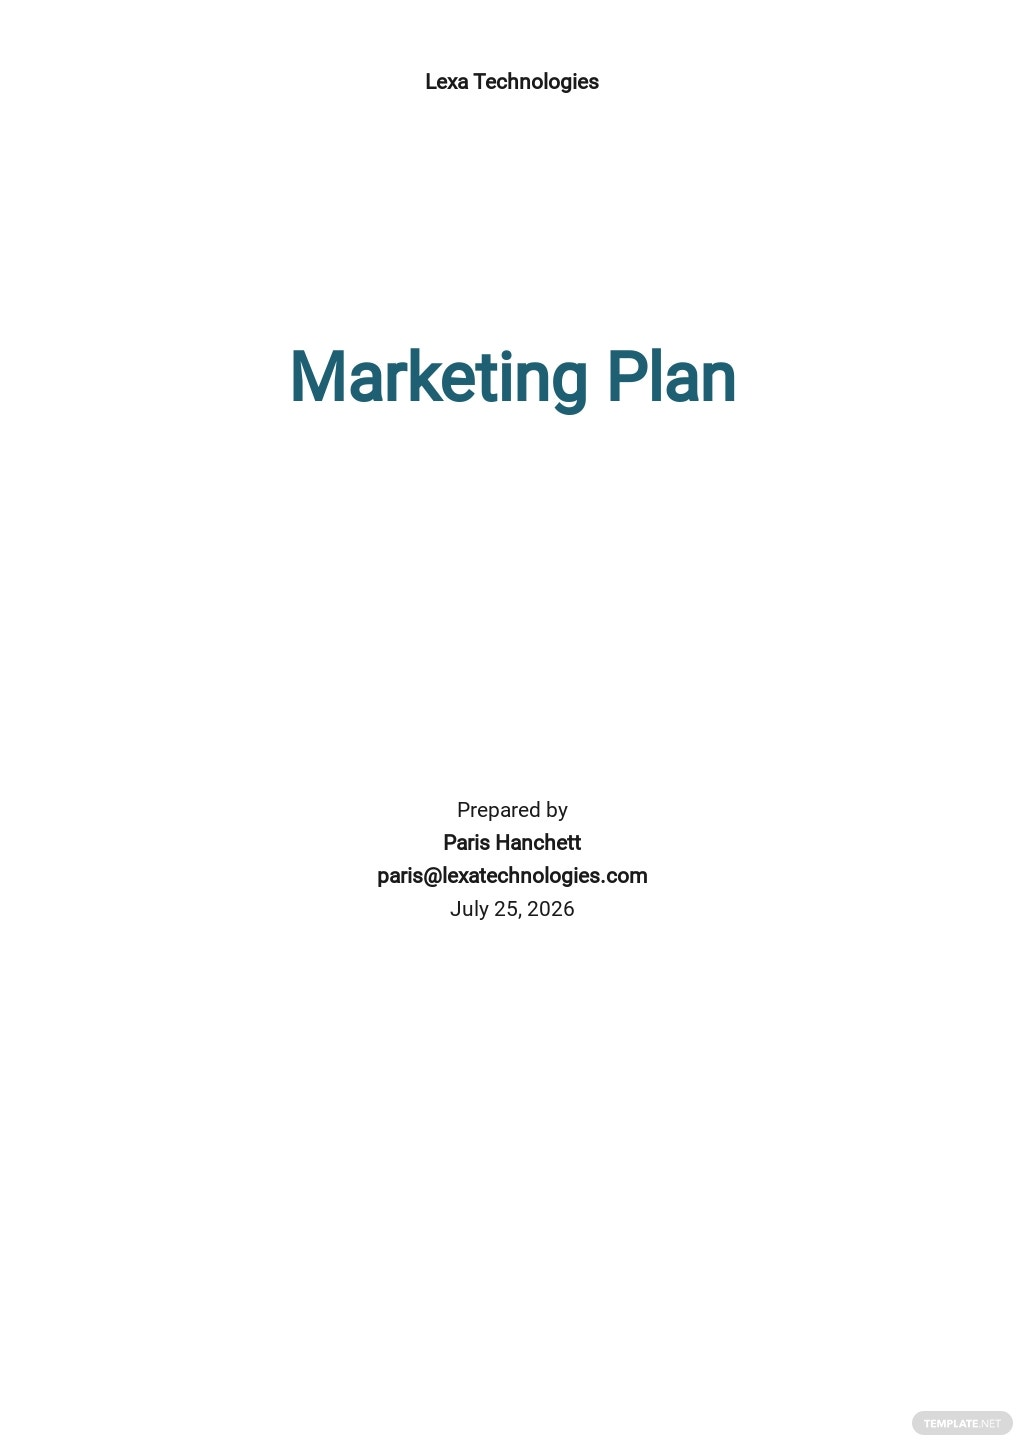 IT Product Marketing Plan Template